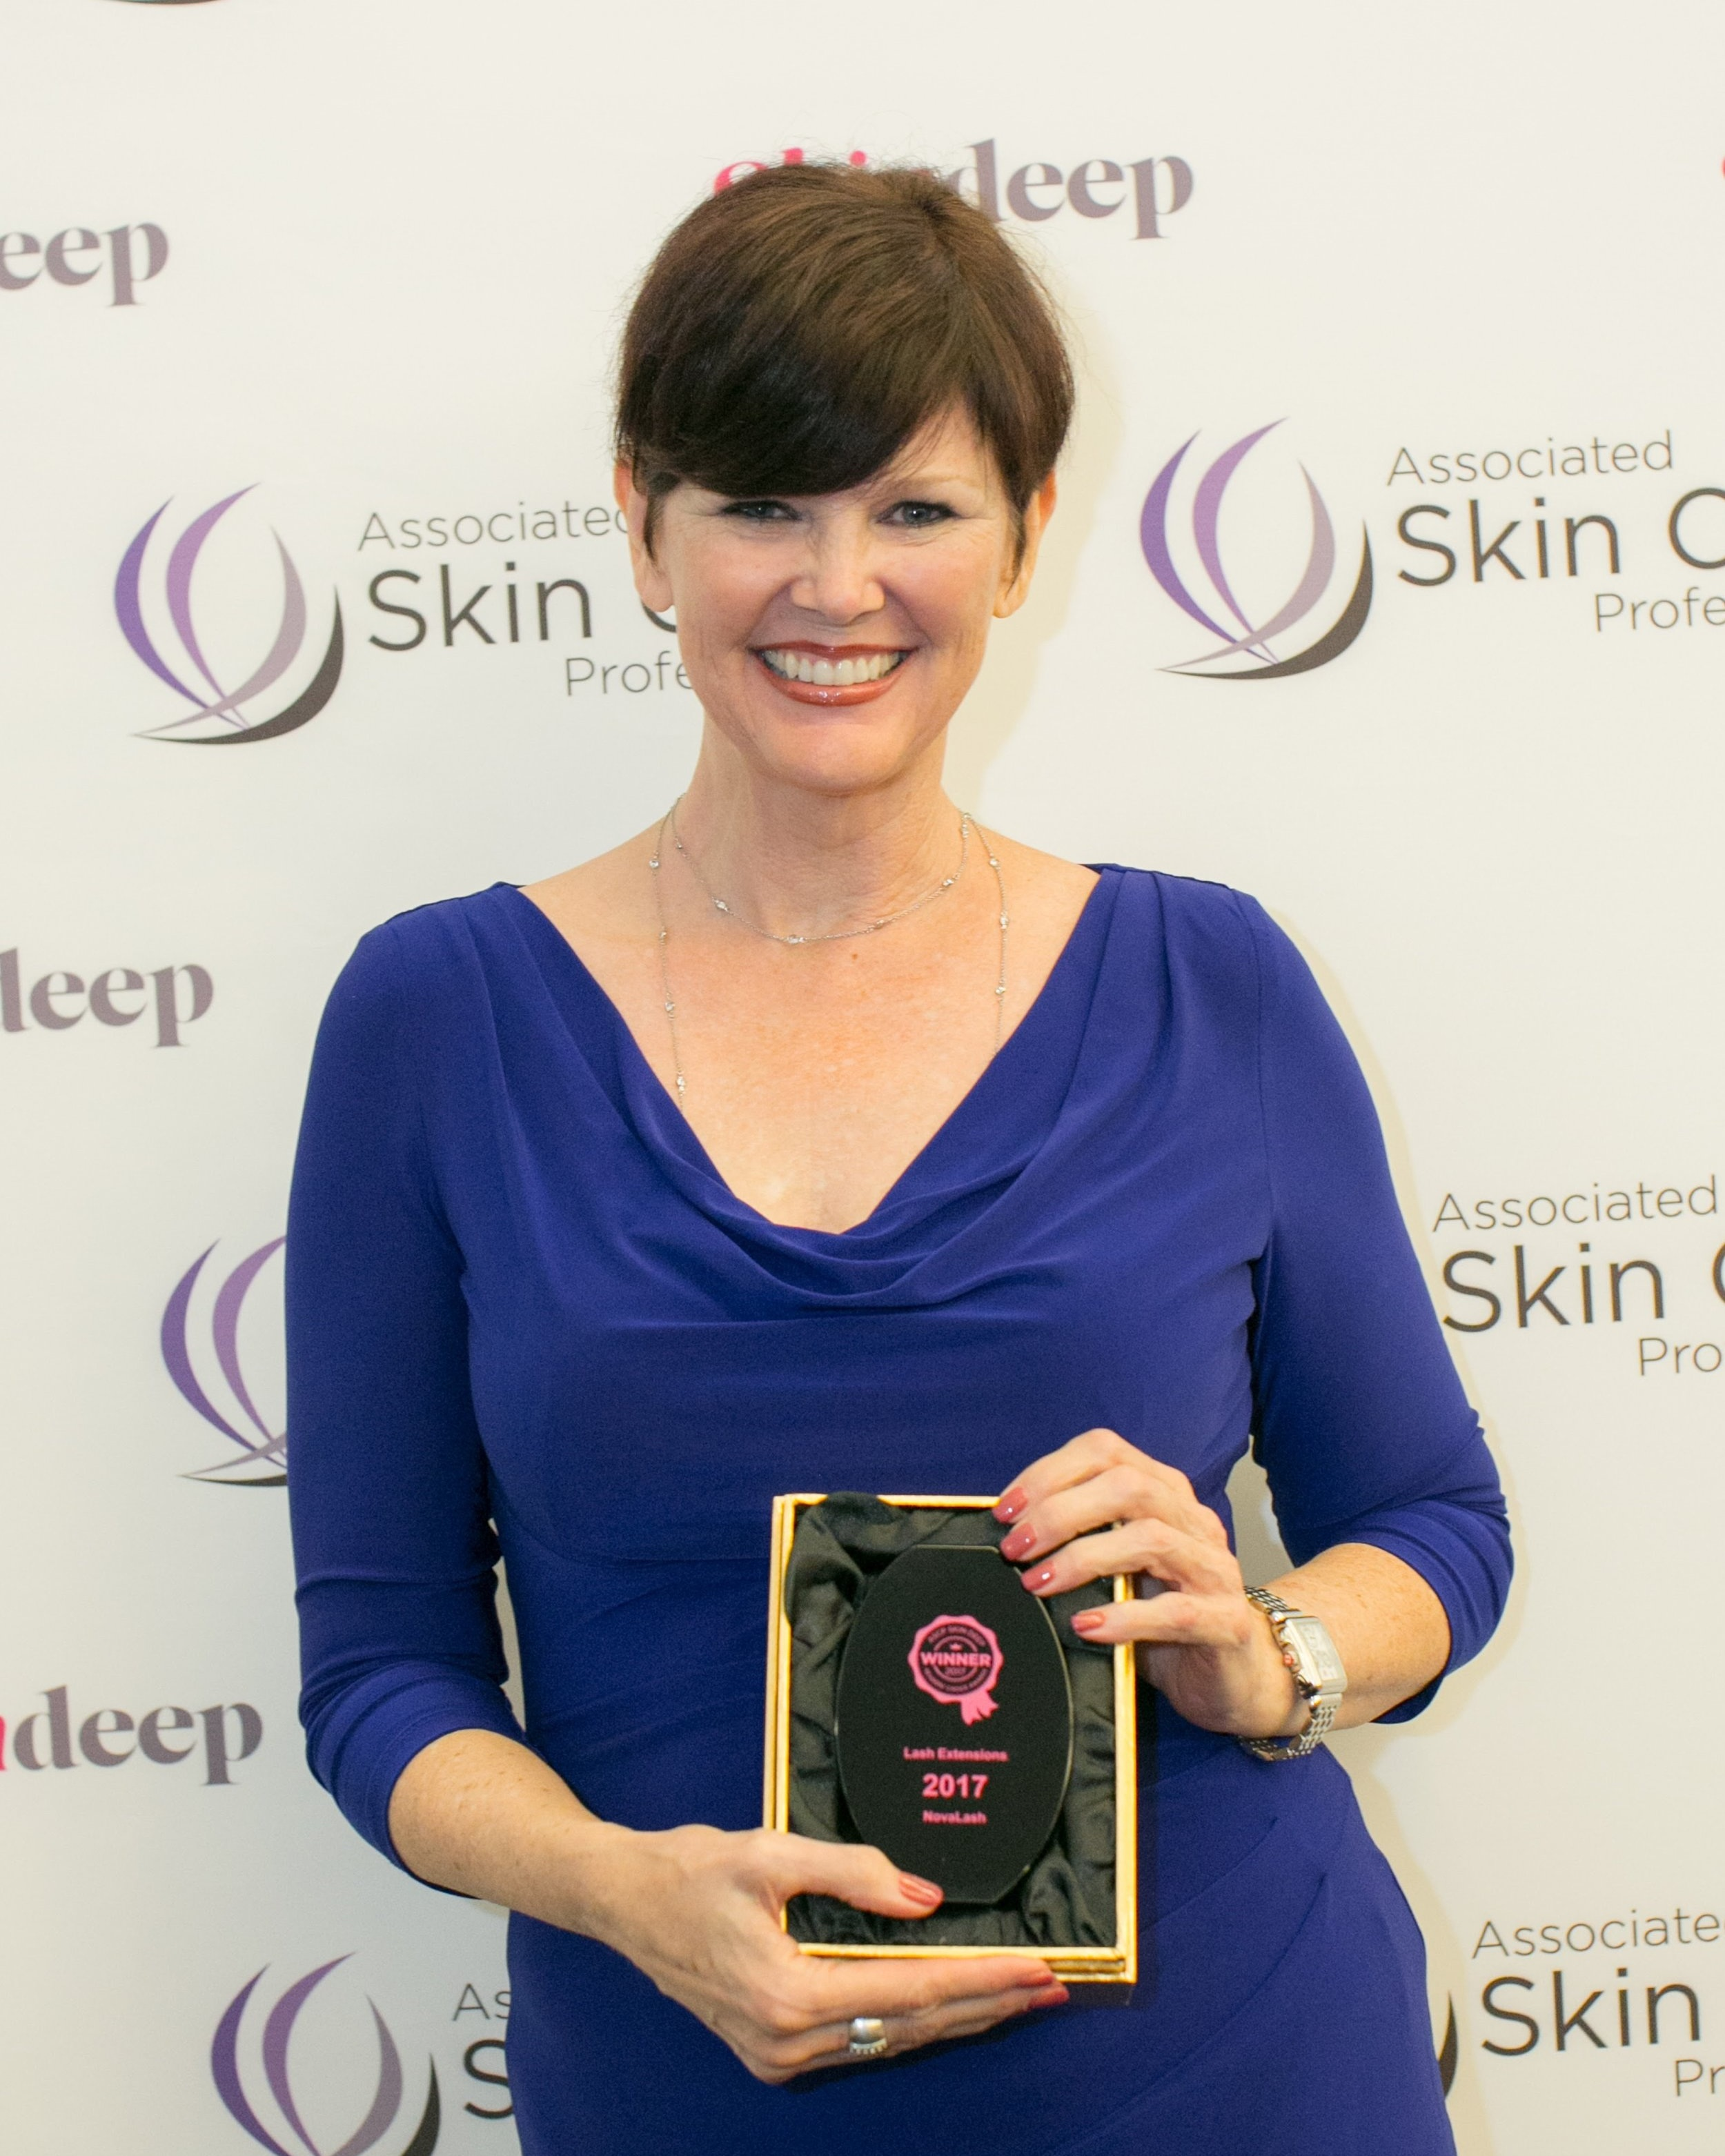 Melanie Kopeikin-Founder/General Manager of the Lash & Brow Academy